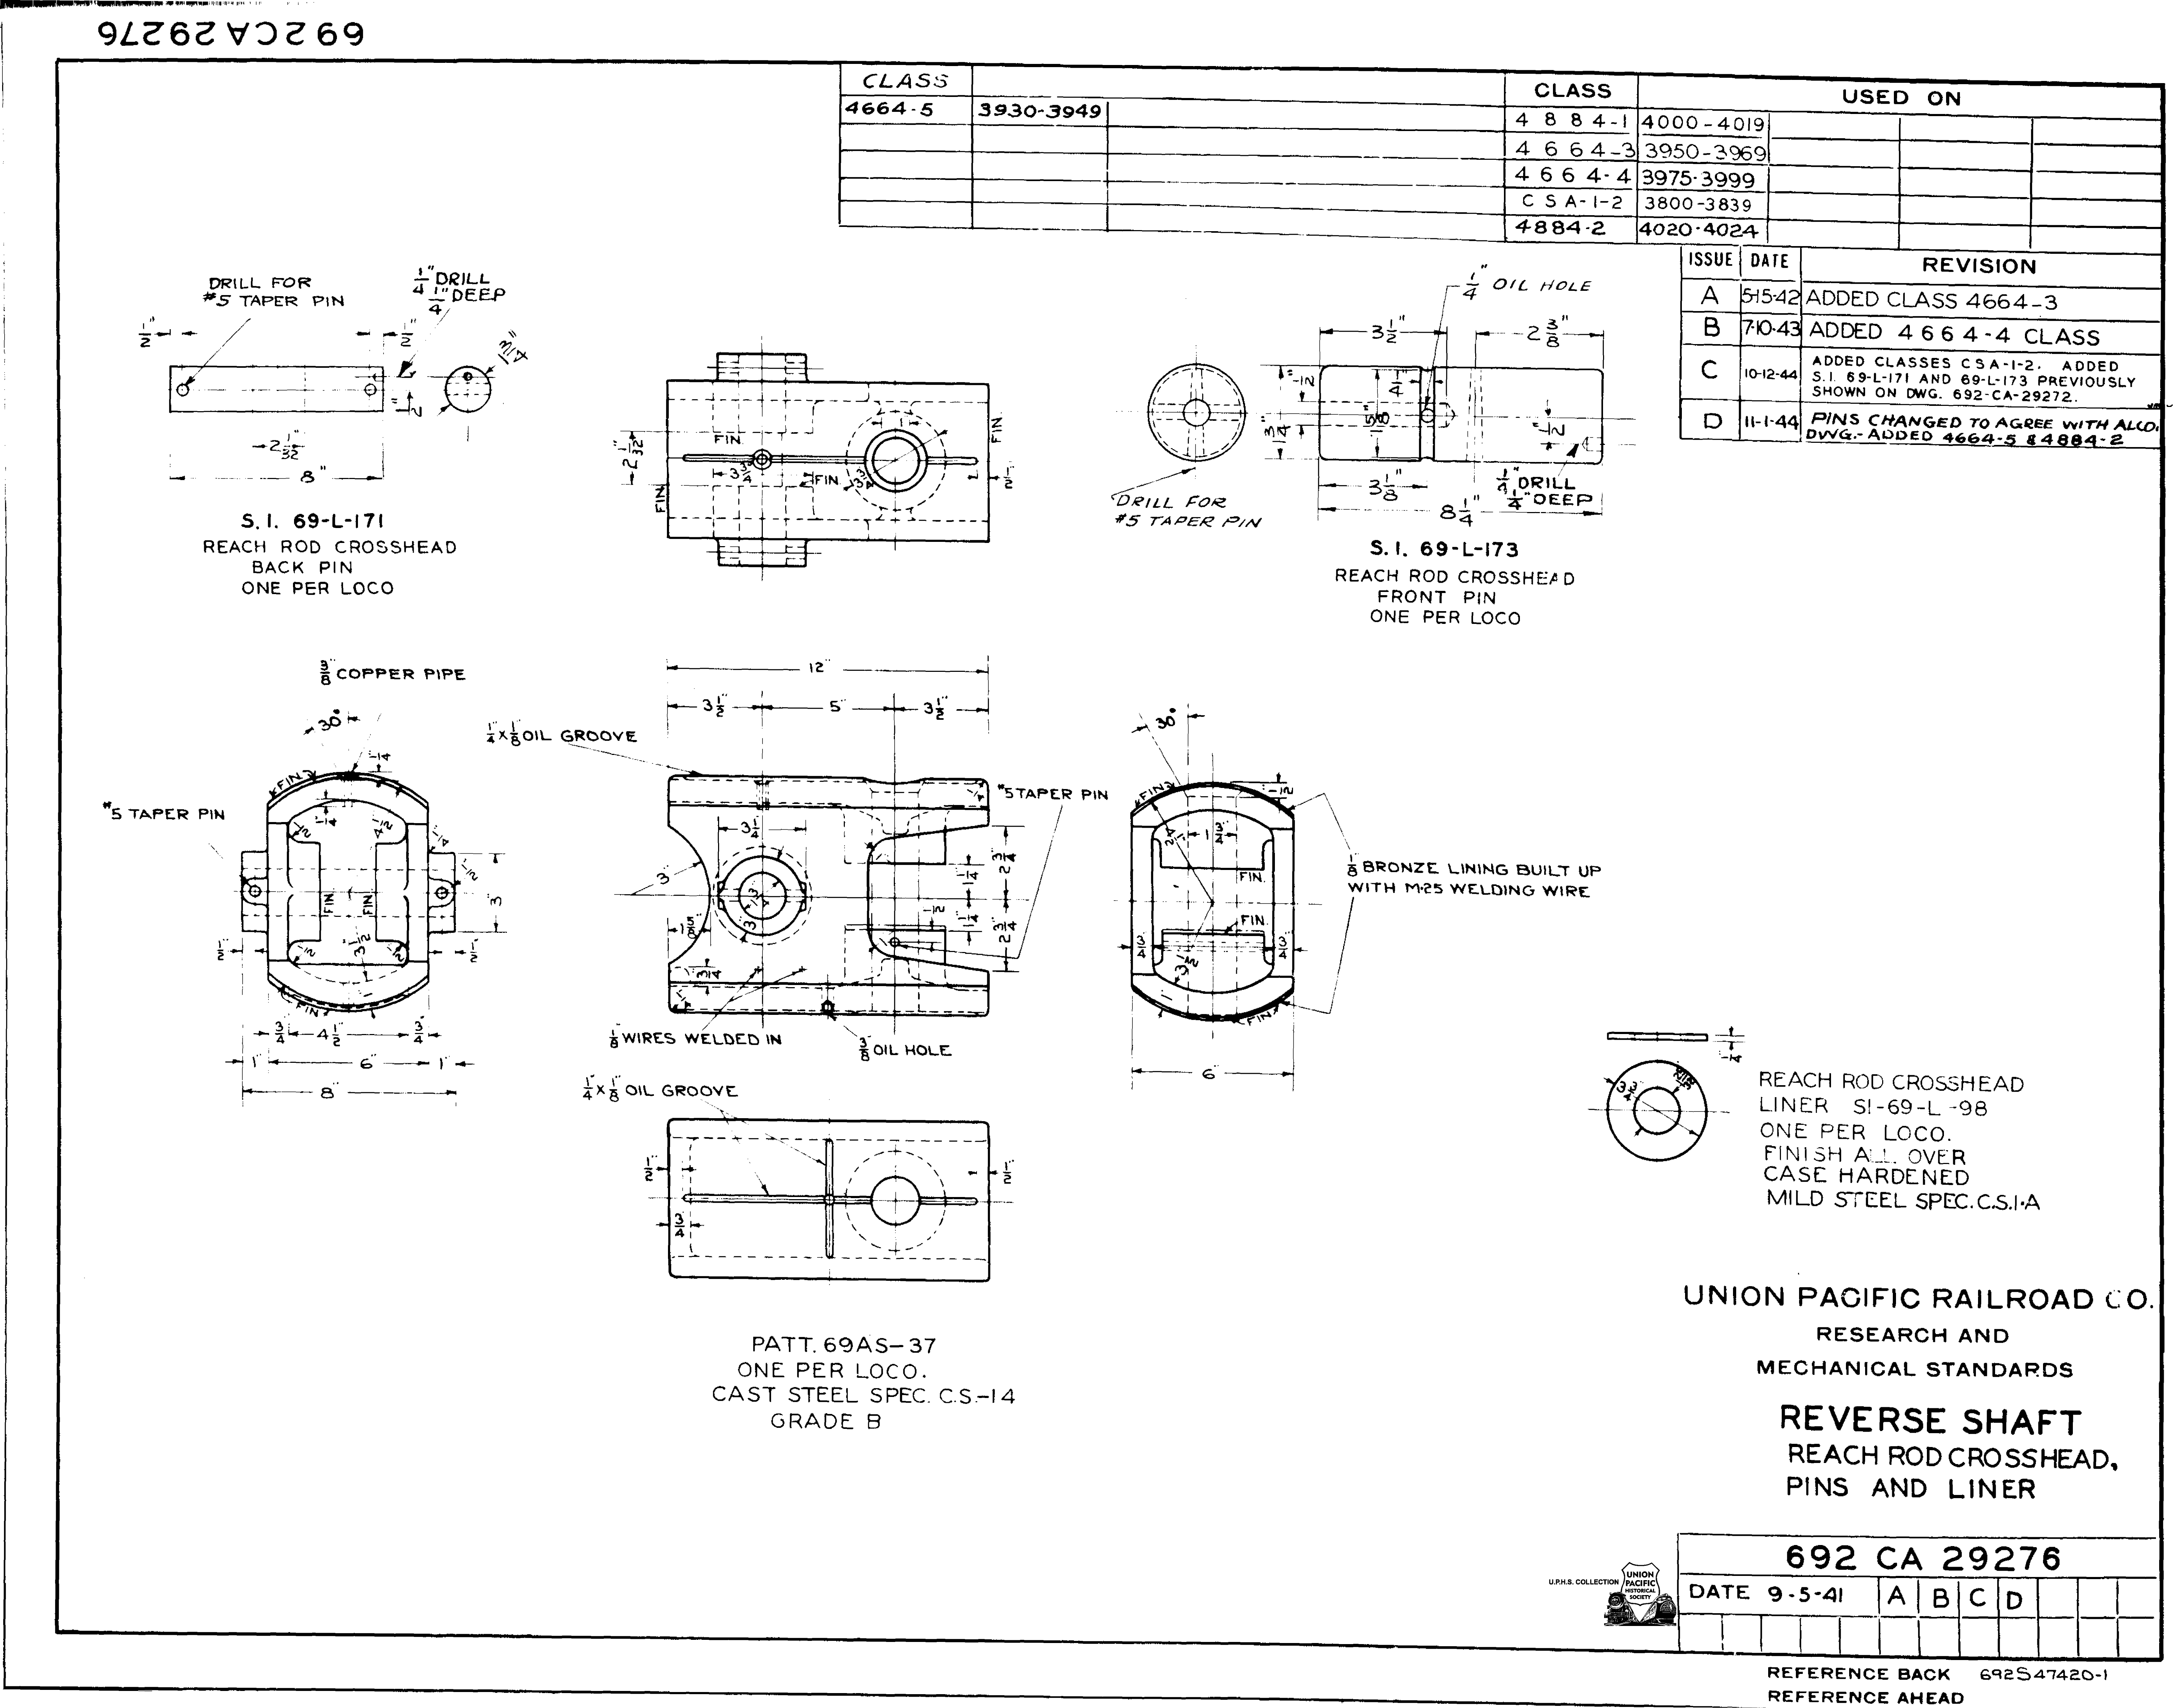 UP Steam Update Refurbishing an Articulated Locomotive Requires – Intricate Engine Diagram